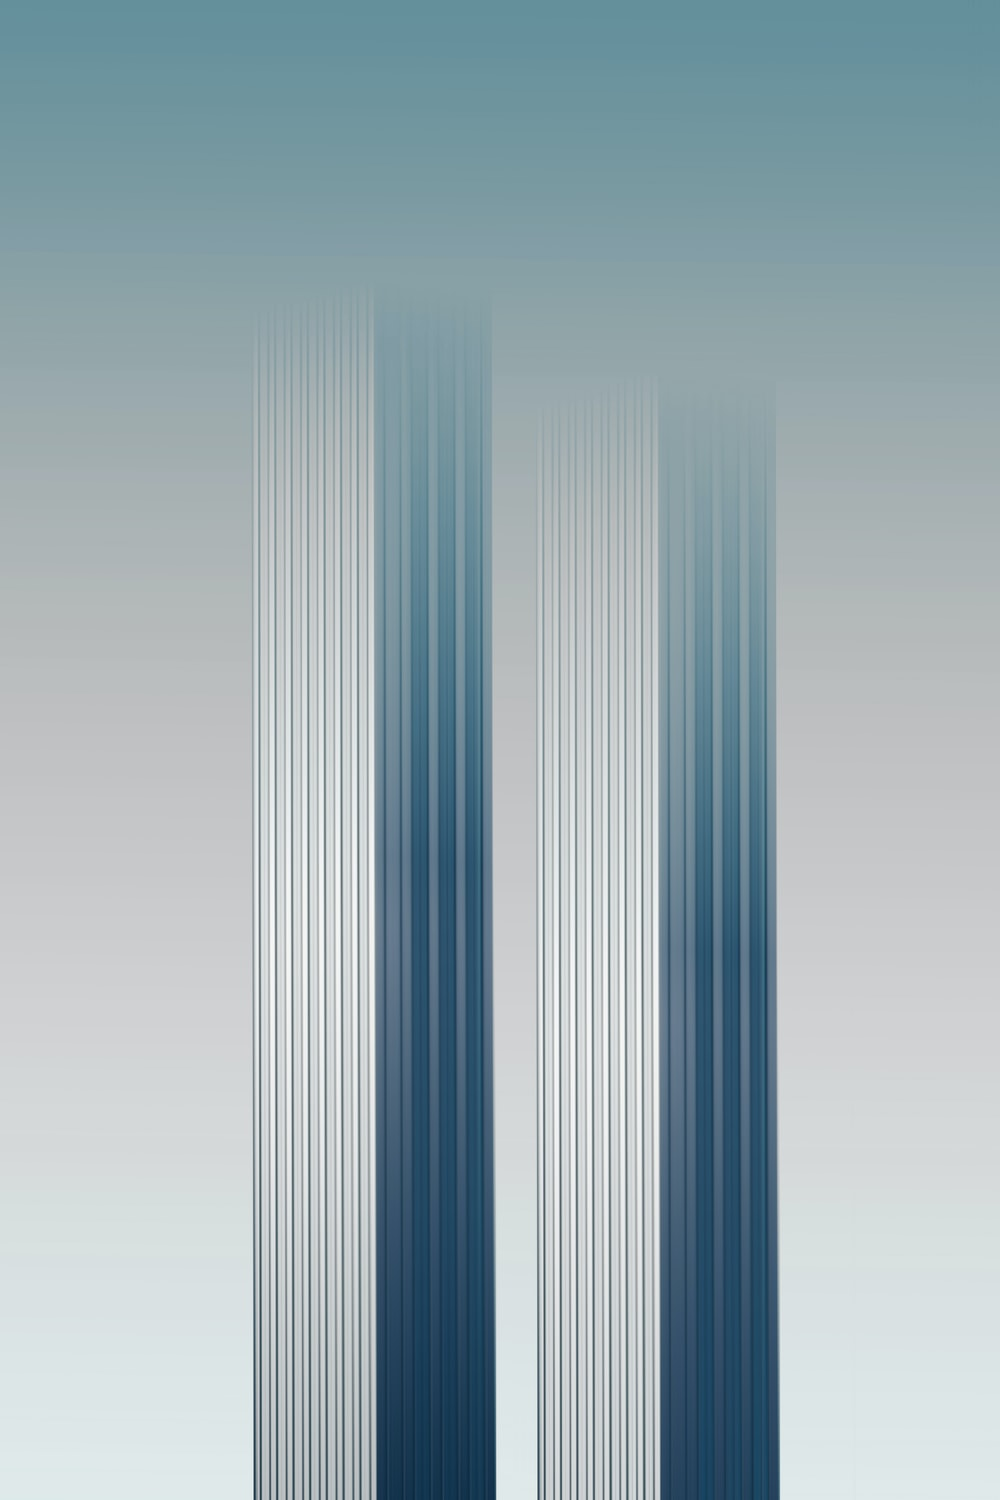 white and blue striped illustration